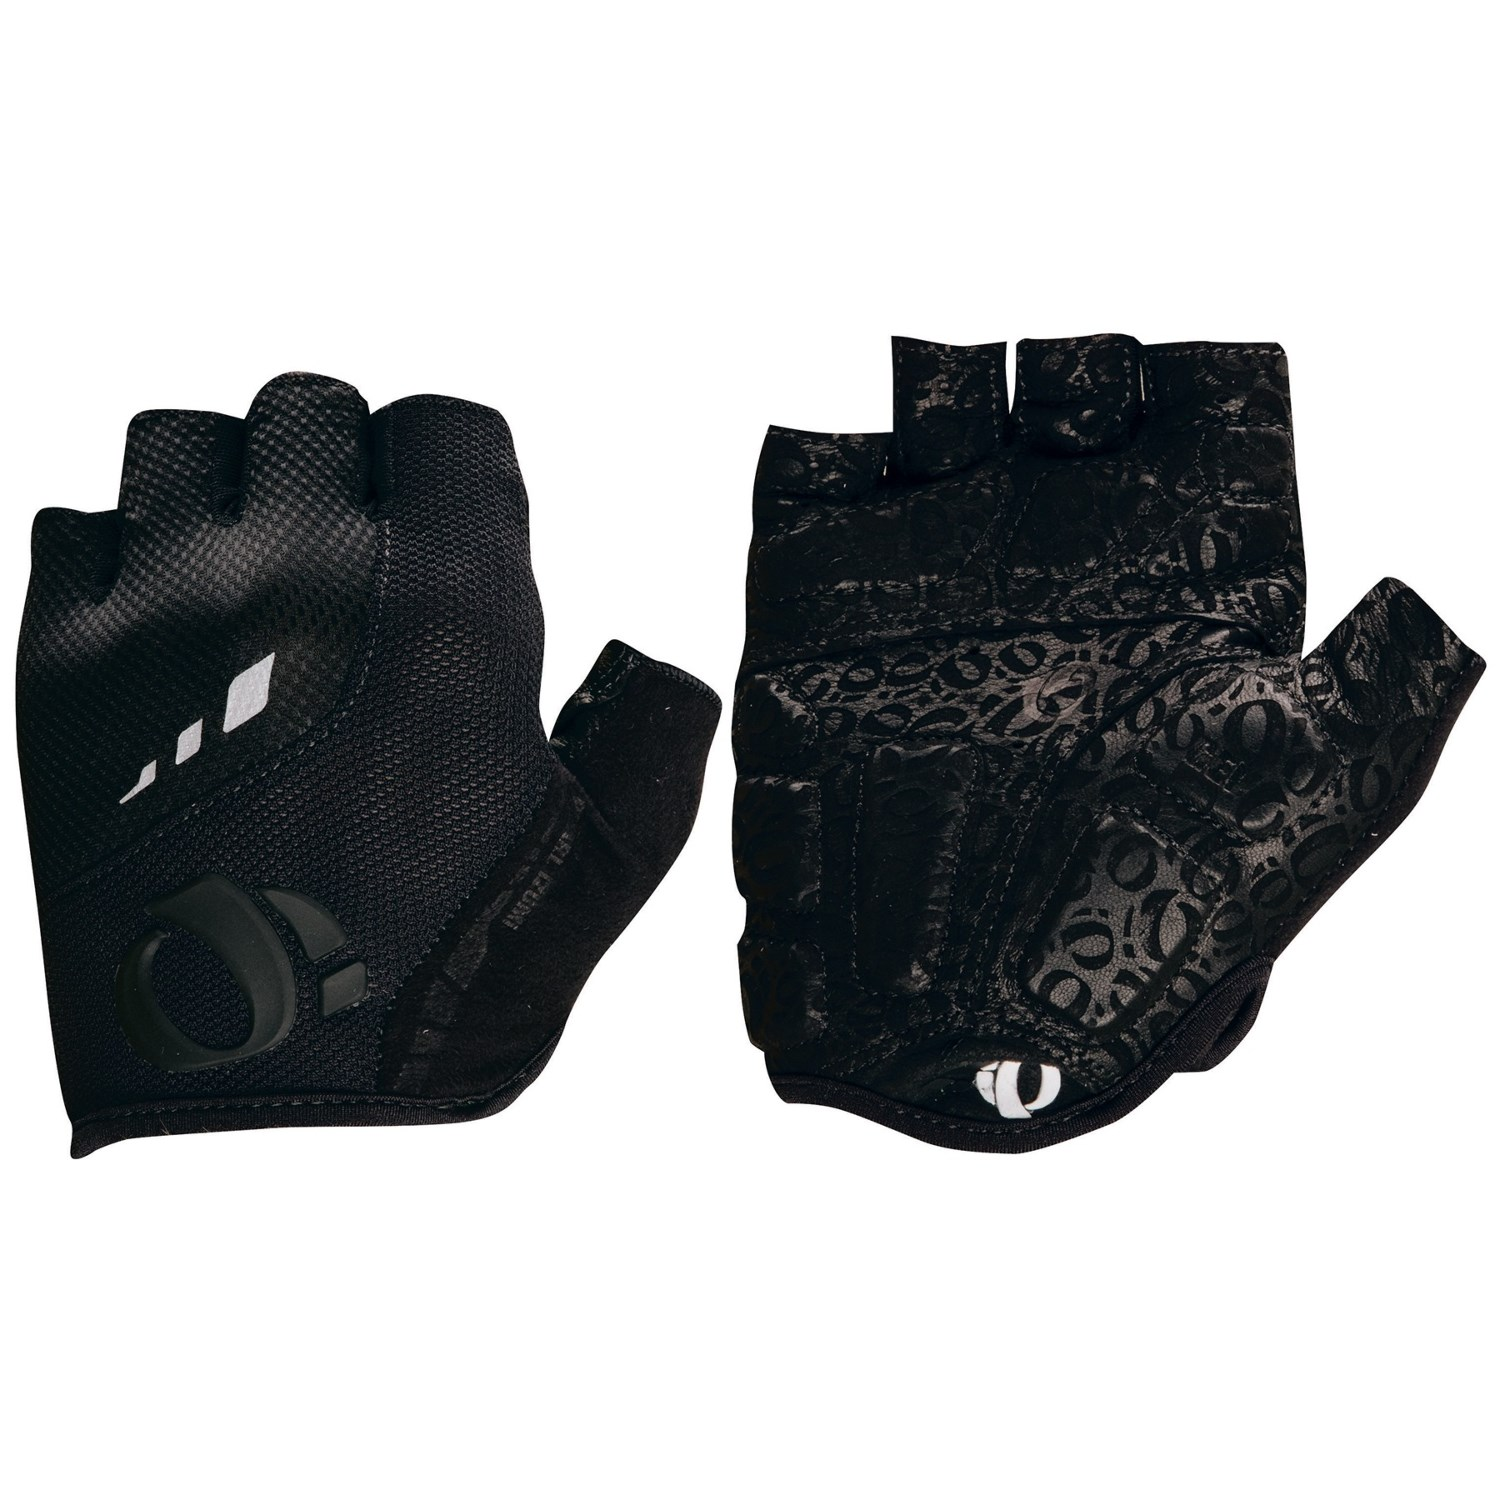 Womens leather gloves australia - Womens Black Leather Gloves Australia